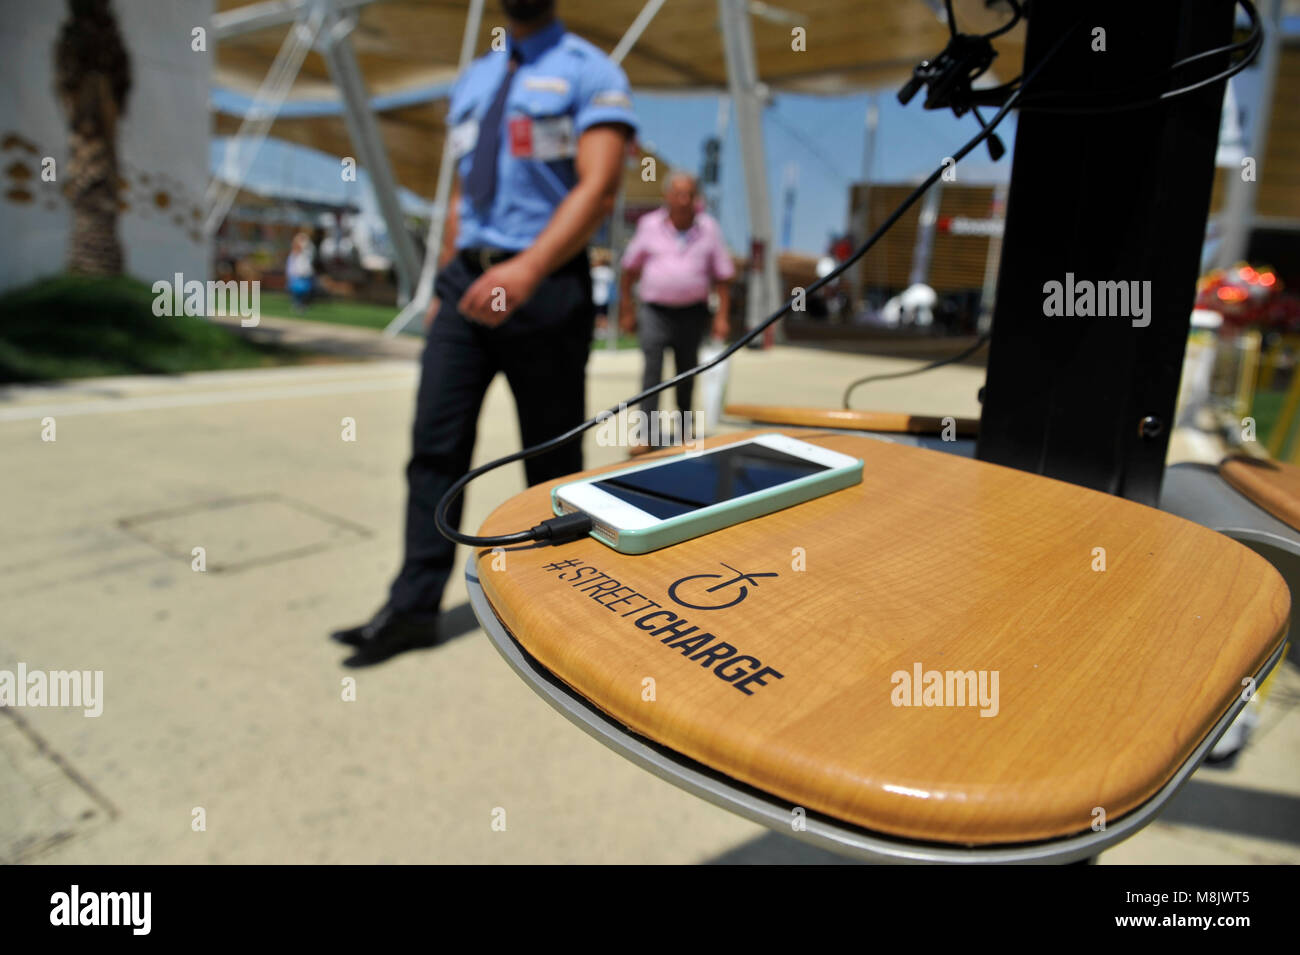 Street charge for smartphone. Policeman on background. The photo was taken in Milan, Italy. - Stock Image